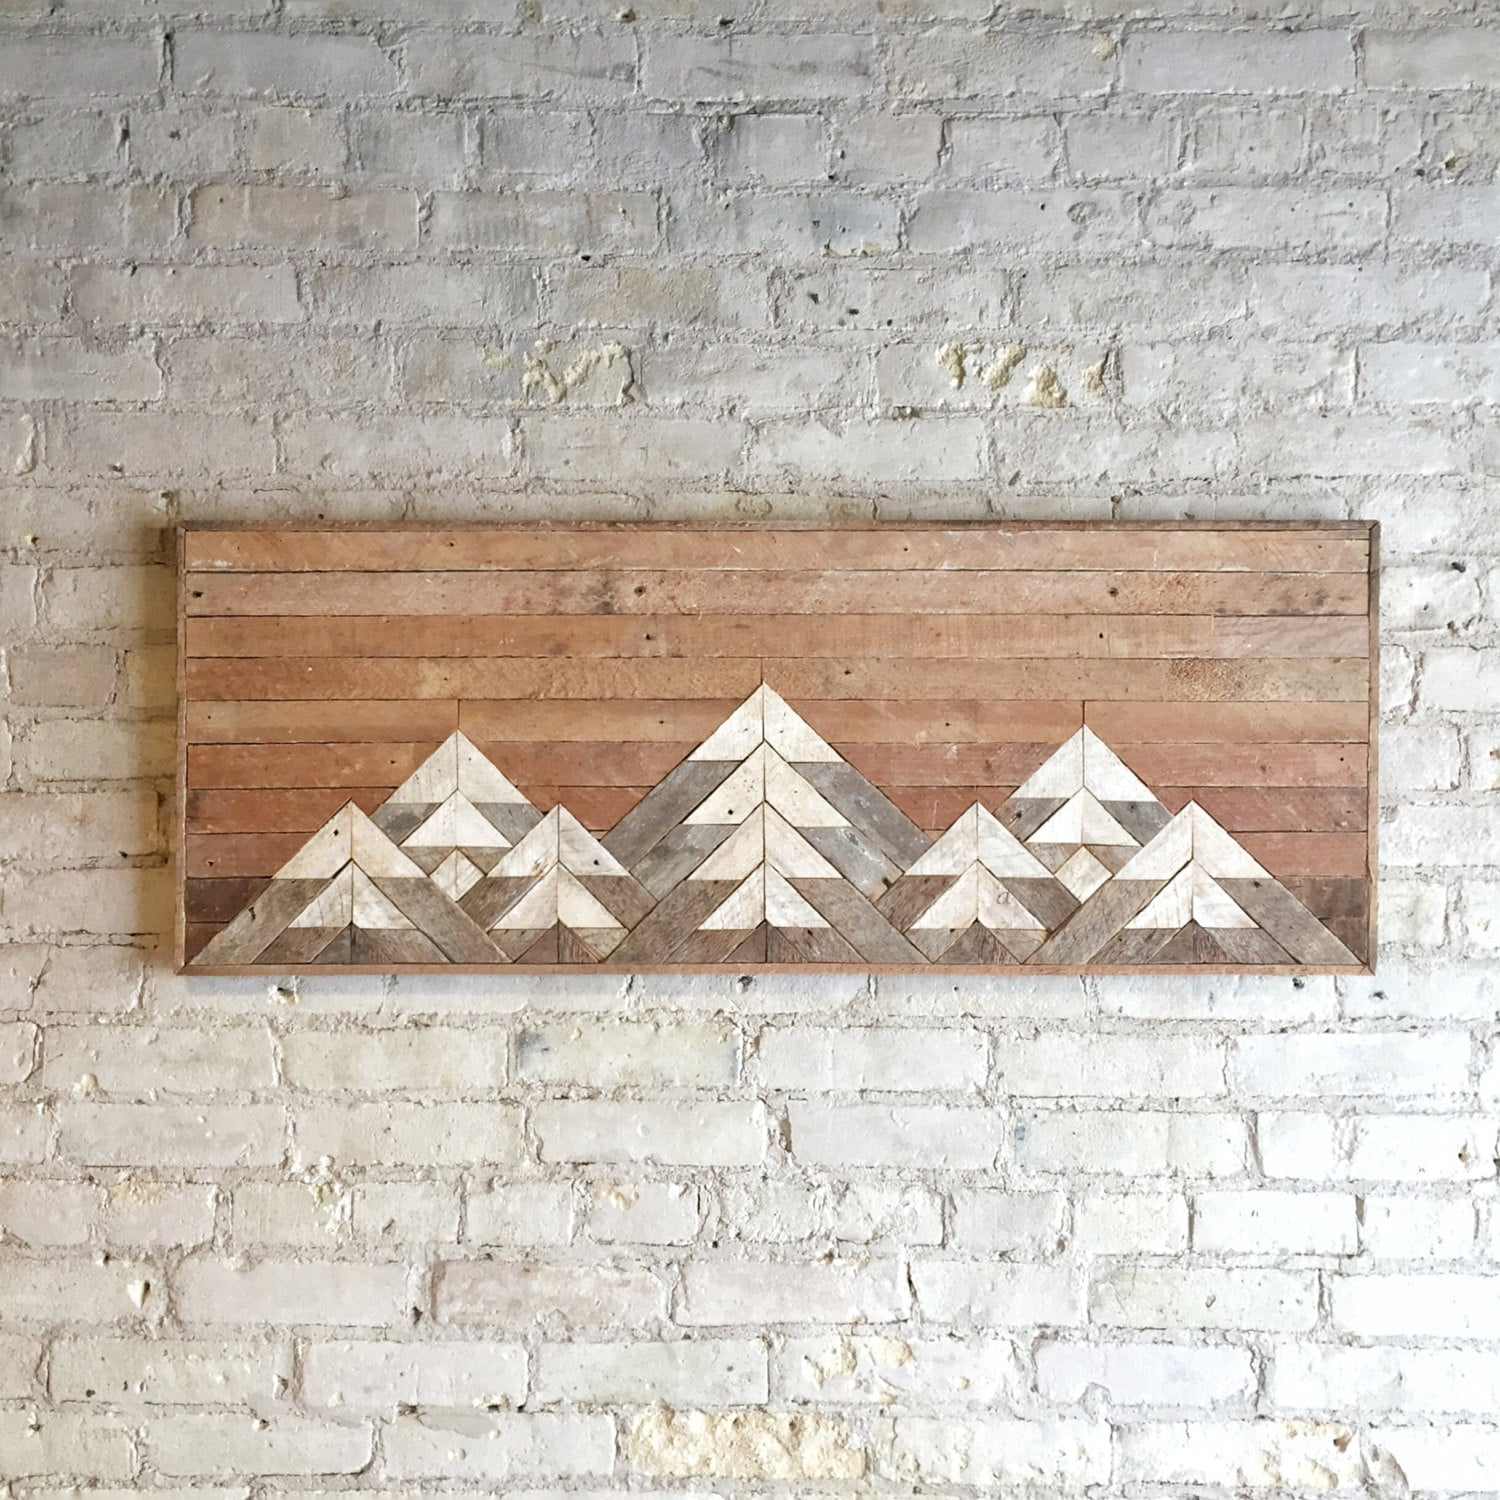 reclaimed wood wall art wall decor twin headboard lath geometric mountains gradient. Black Bedroom Furniture Sets. Home Design Ideas